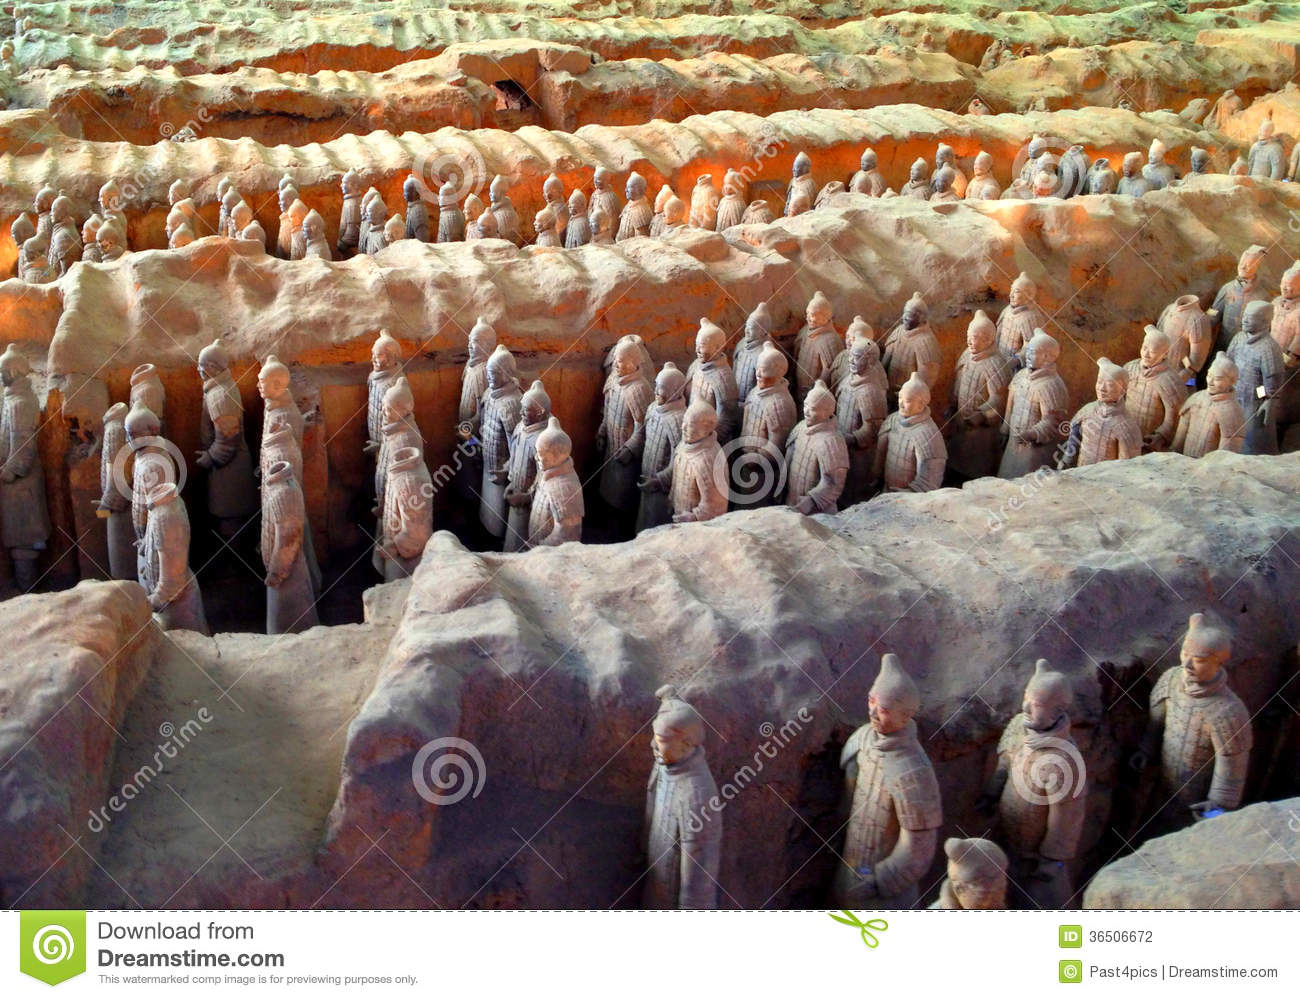 Guerreiros da terracota, Xi an, China